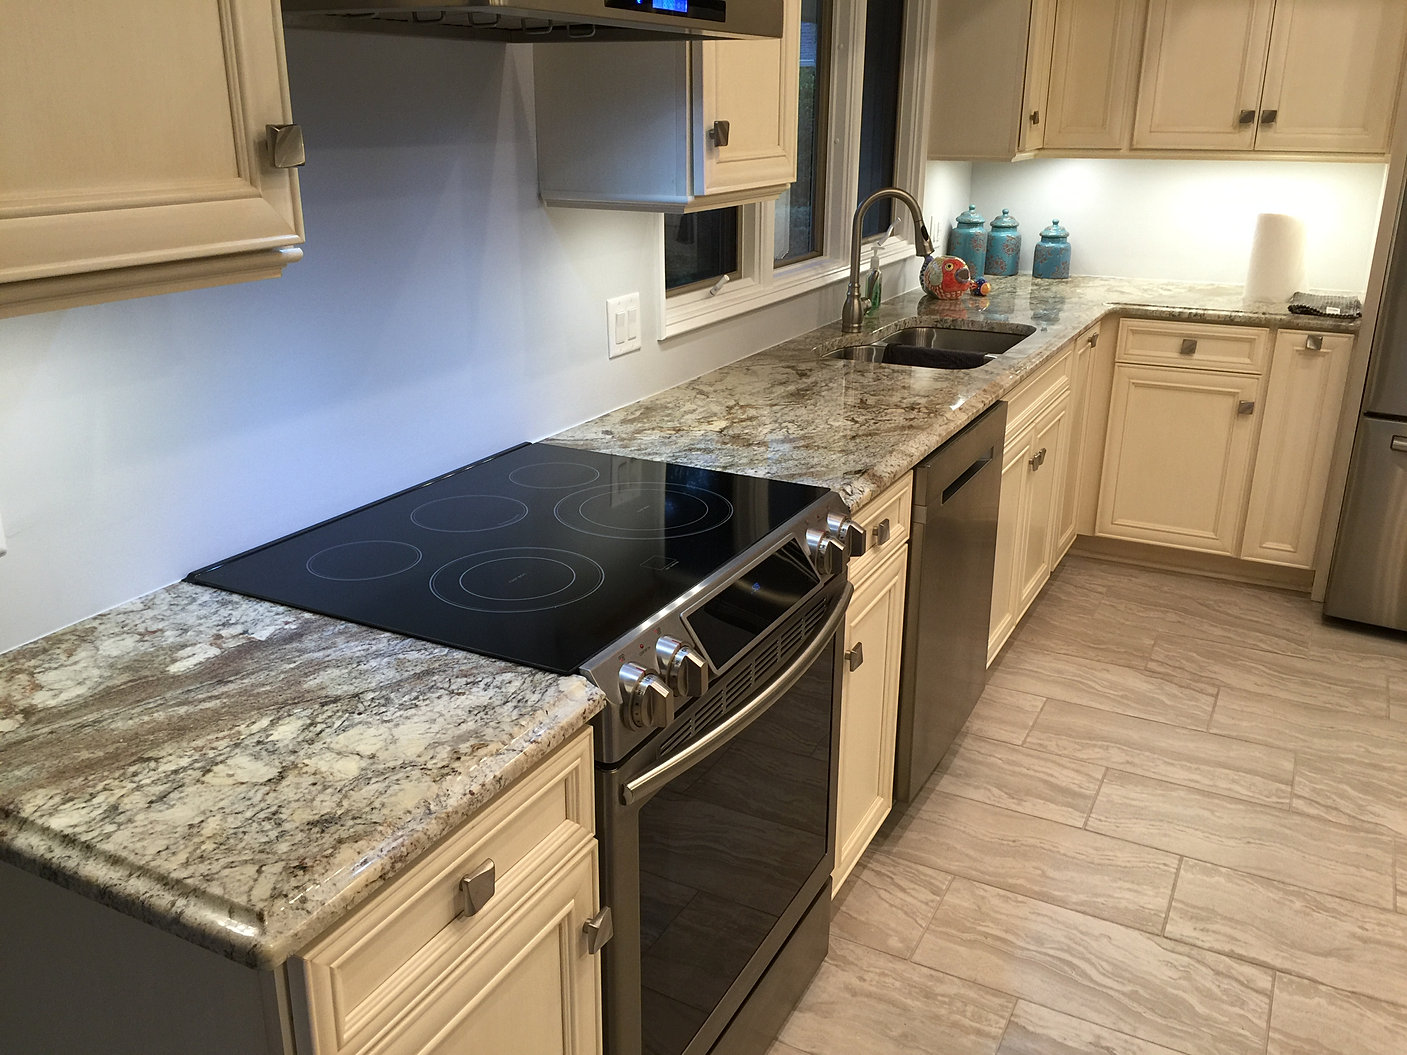 Paradise granite marble for Kitchen cabinets jimmy carter blvd